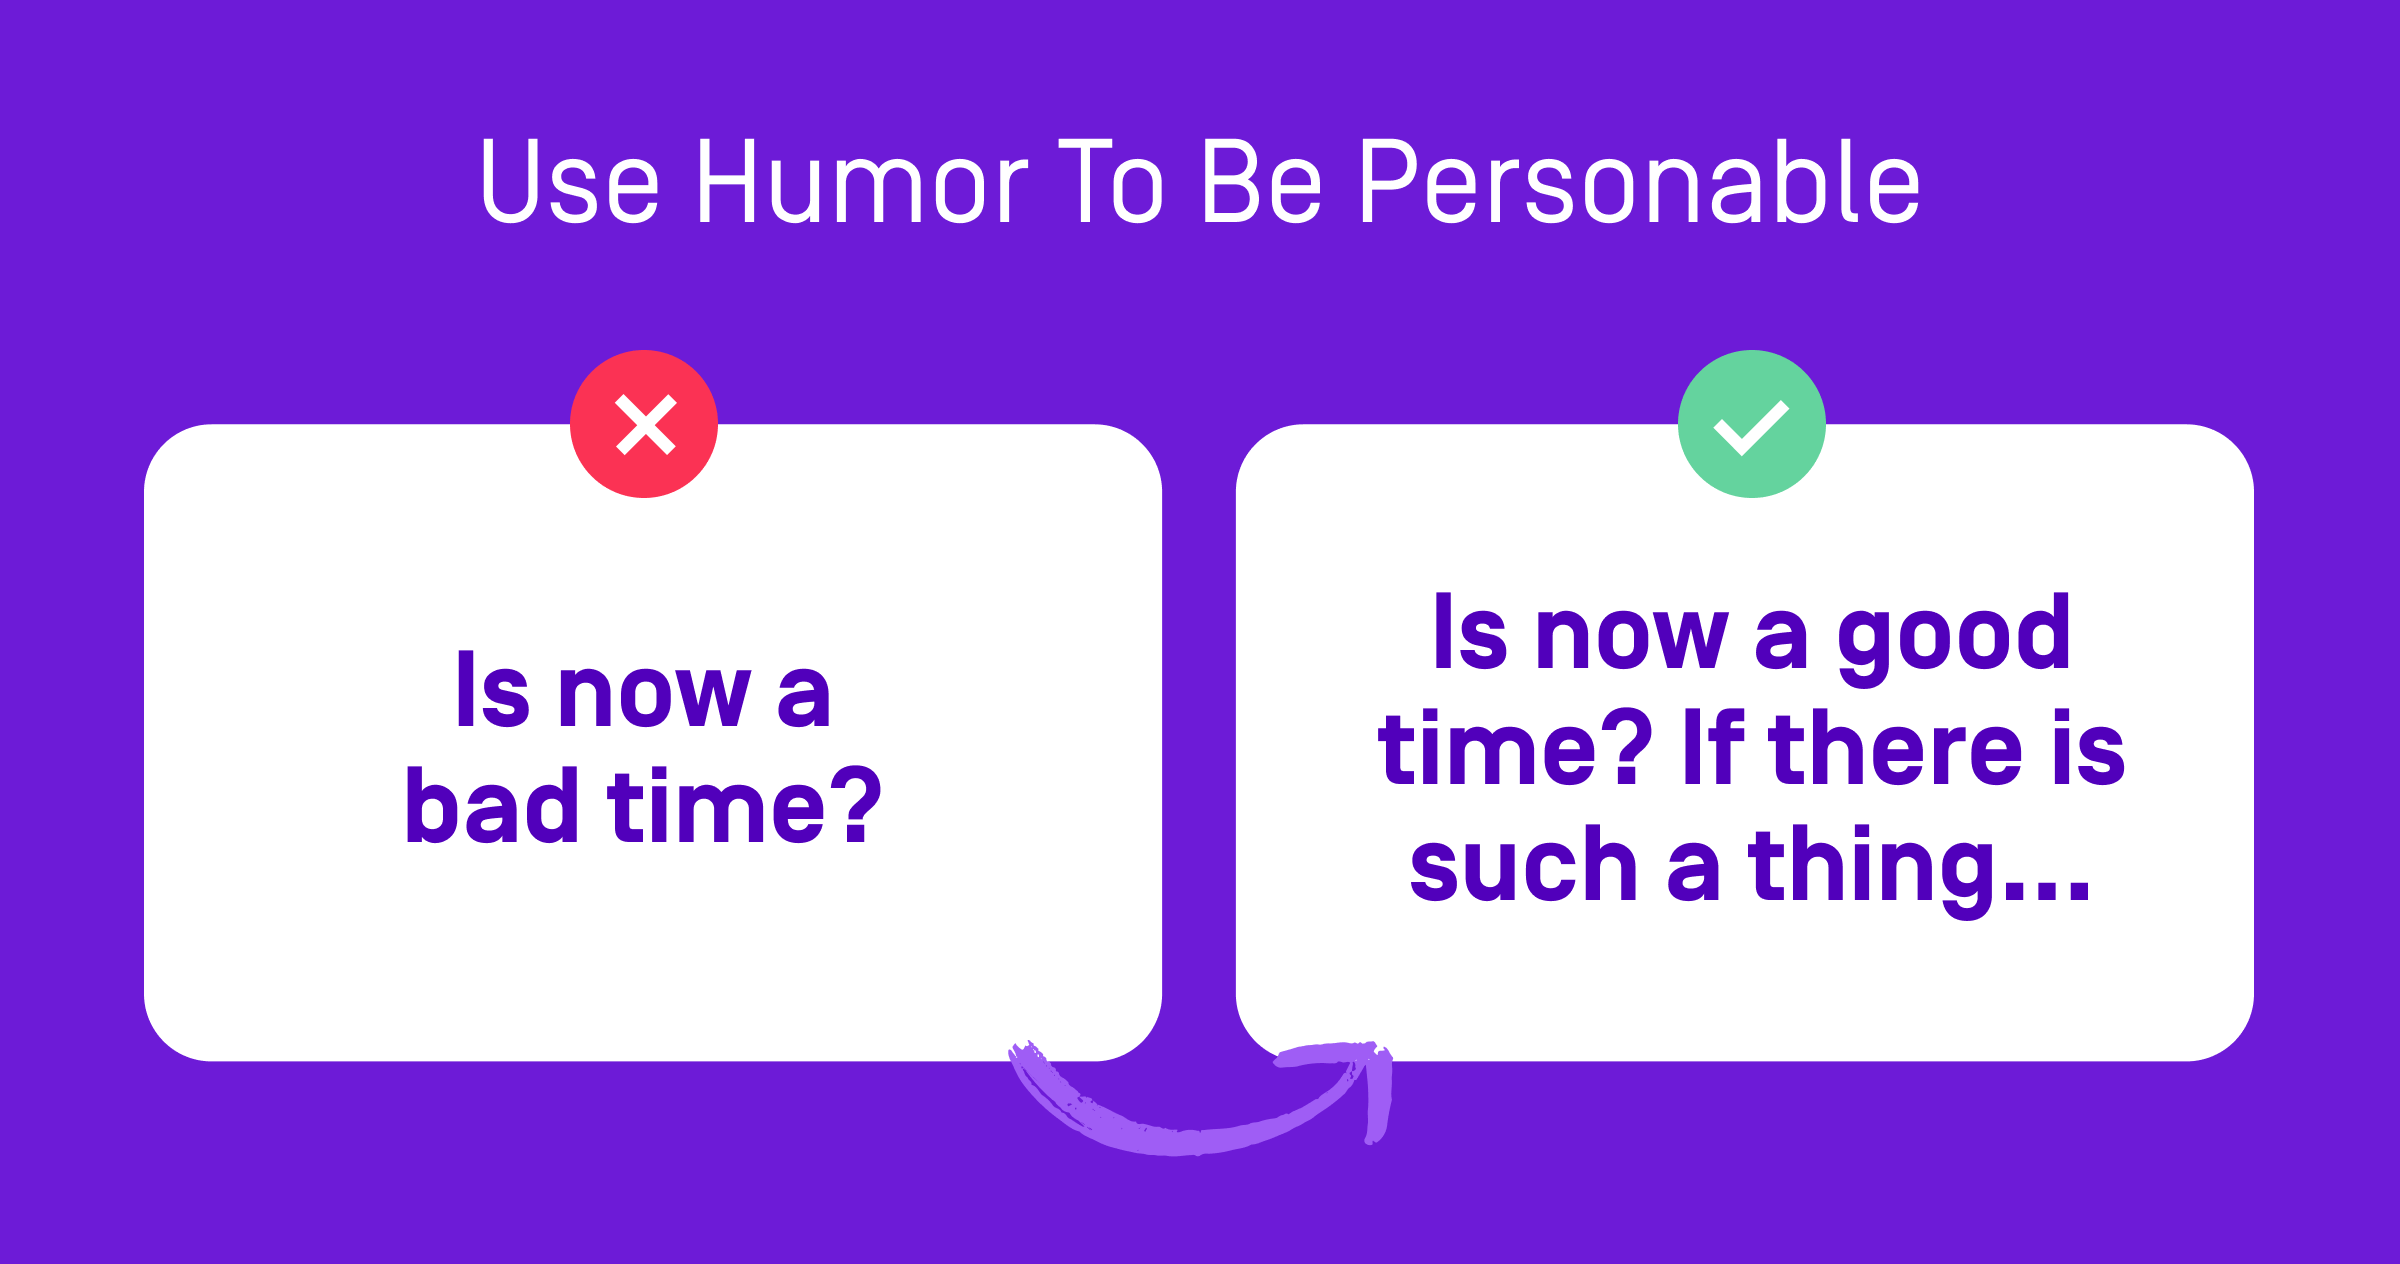 use humor to be personable